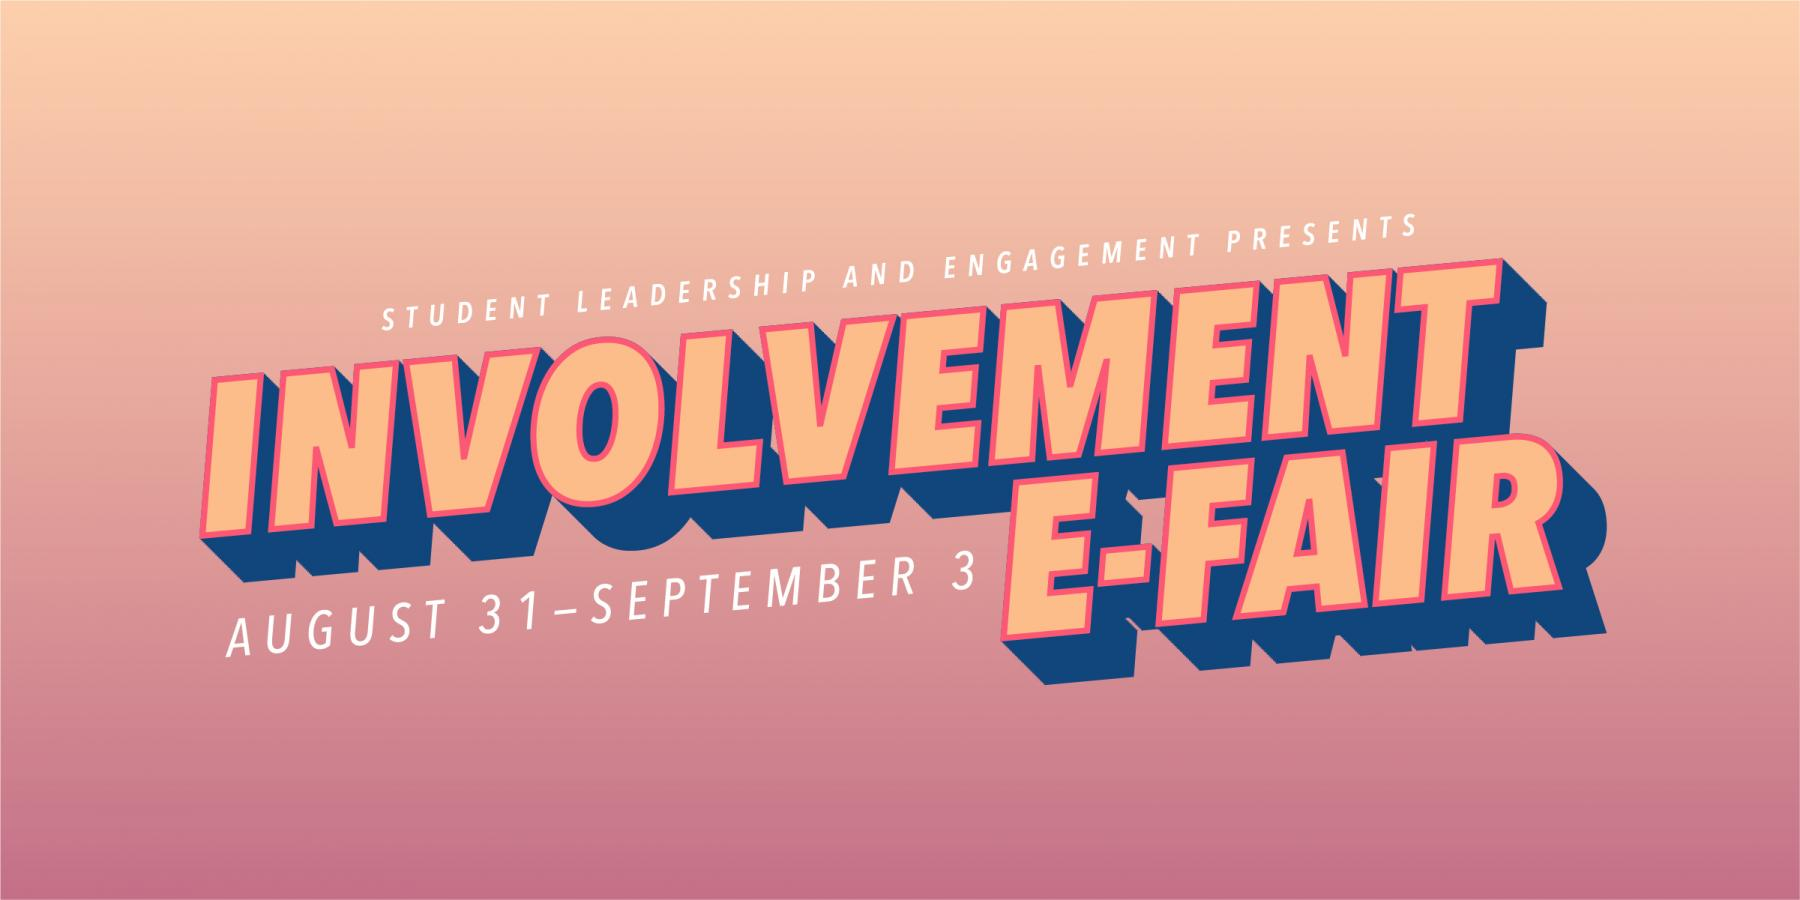 graphic with text: Involvement E-Fair